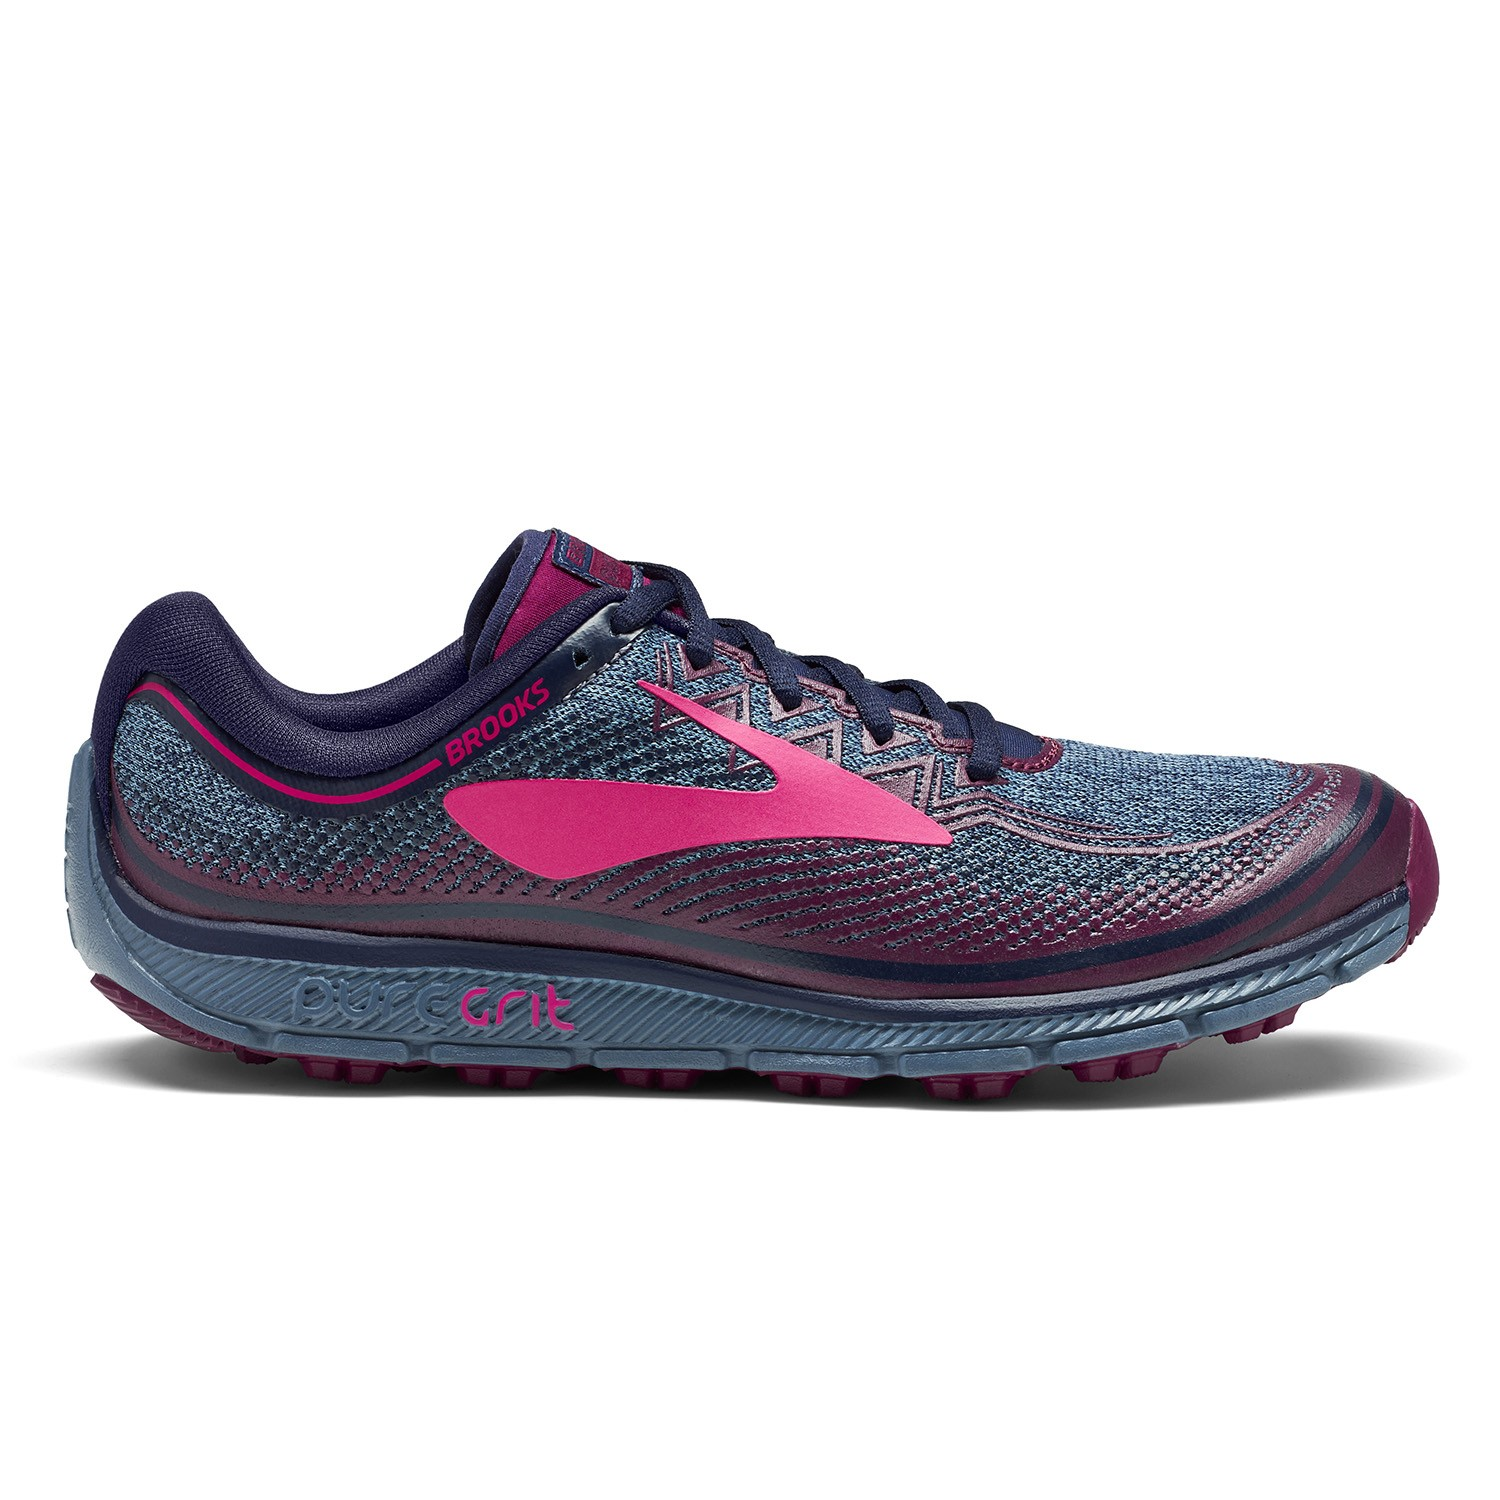 0be05e5f2d1 Brooks Pure Grit 6 - Womens Trail Running Shoes - Navy Plum Pink ...